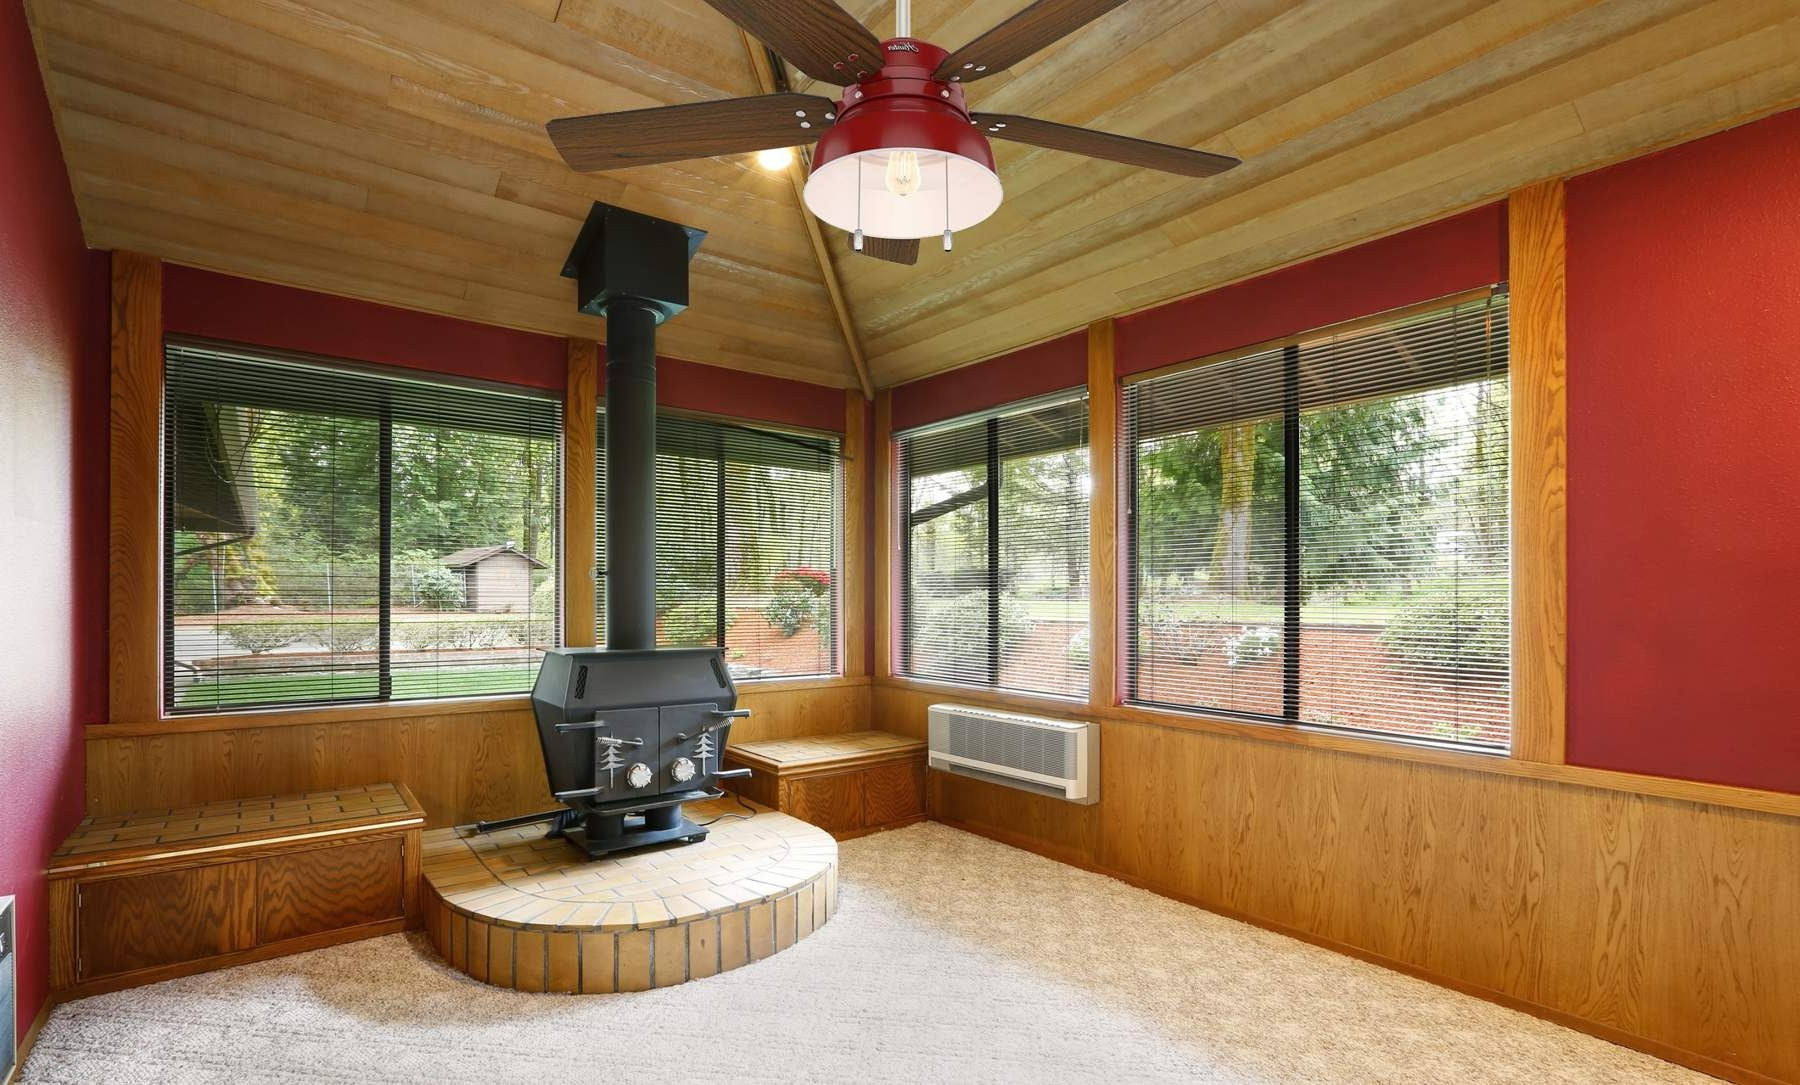 Hunter Mill Valley Ceiling Fan Model 59309 Intended For Well Known Mill Valley 5 Blade Ceiling Fans (Gallery 3 of 20)